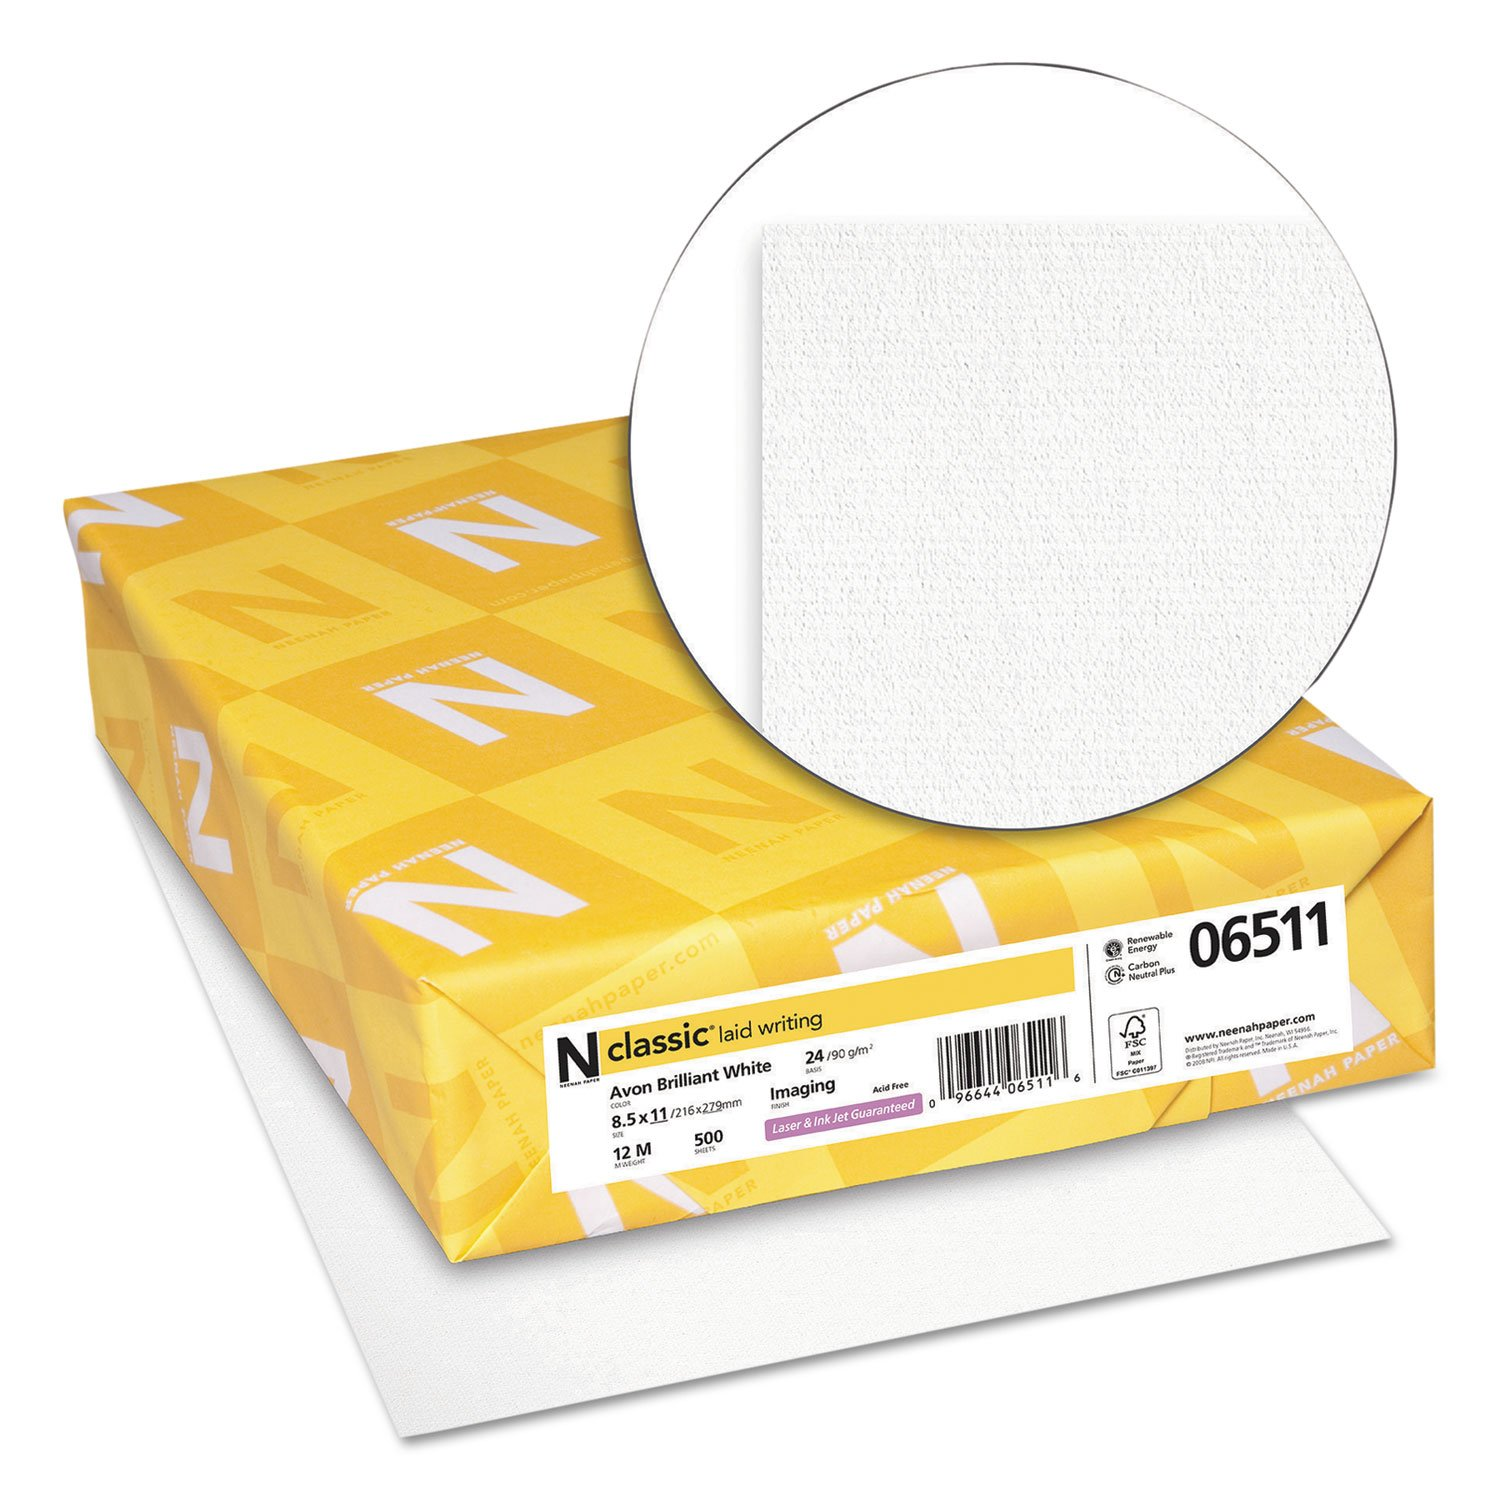 Neenah Paper 06511 CLASSIC Laid Writing Paper, 24lb, 93 Bright, 8 1/2 x 11, Avon White, 500 Sheets by Office Realm